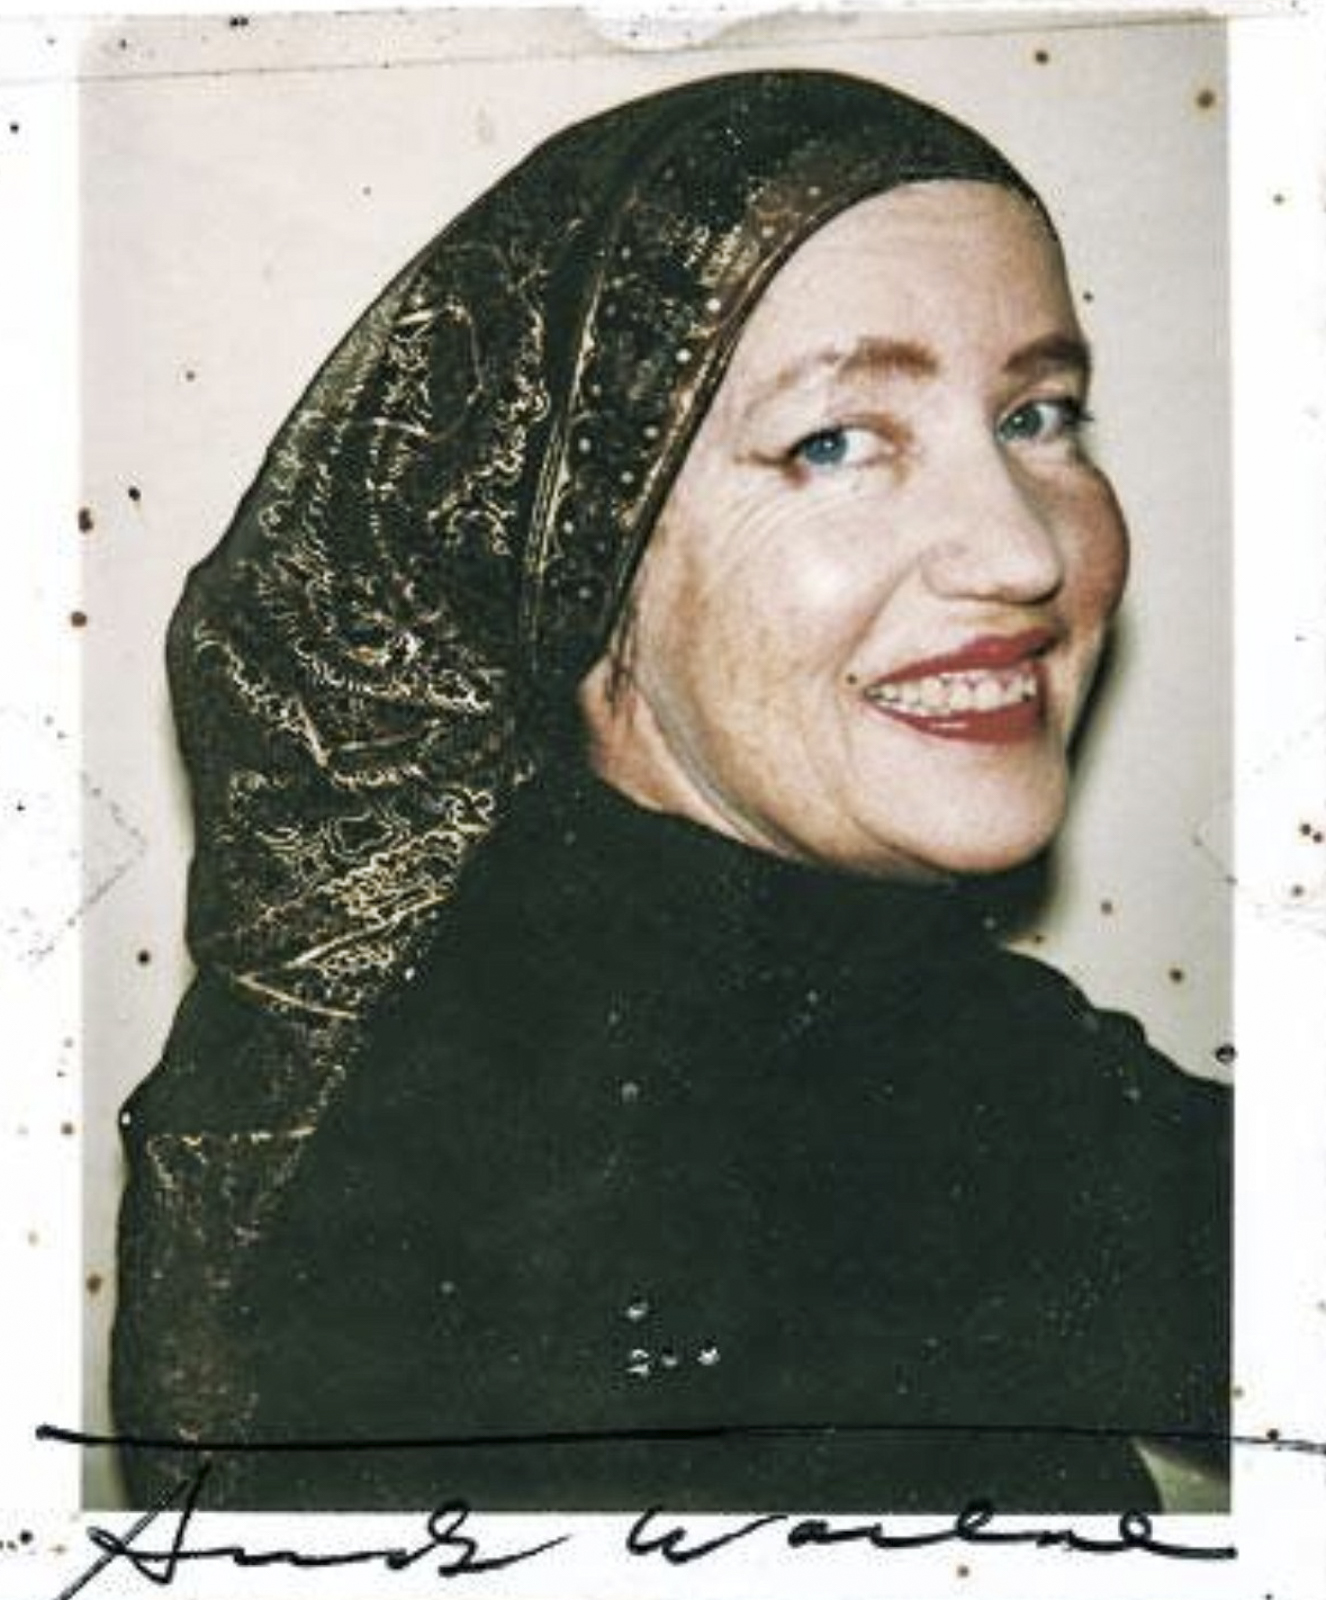 Andy Warhol's Polaroid of Little Edie